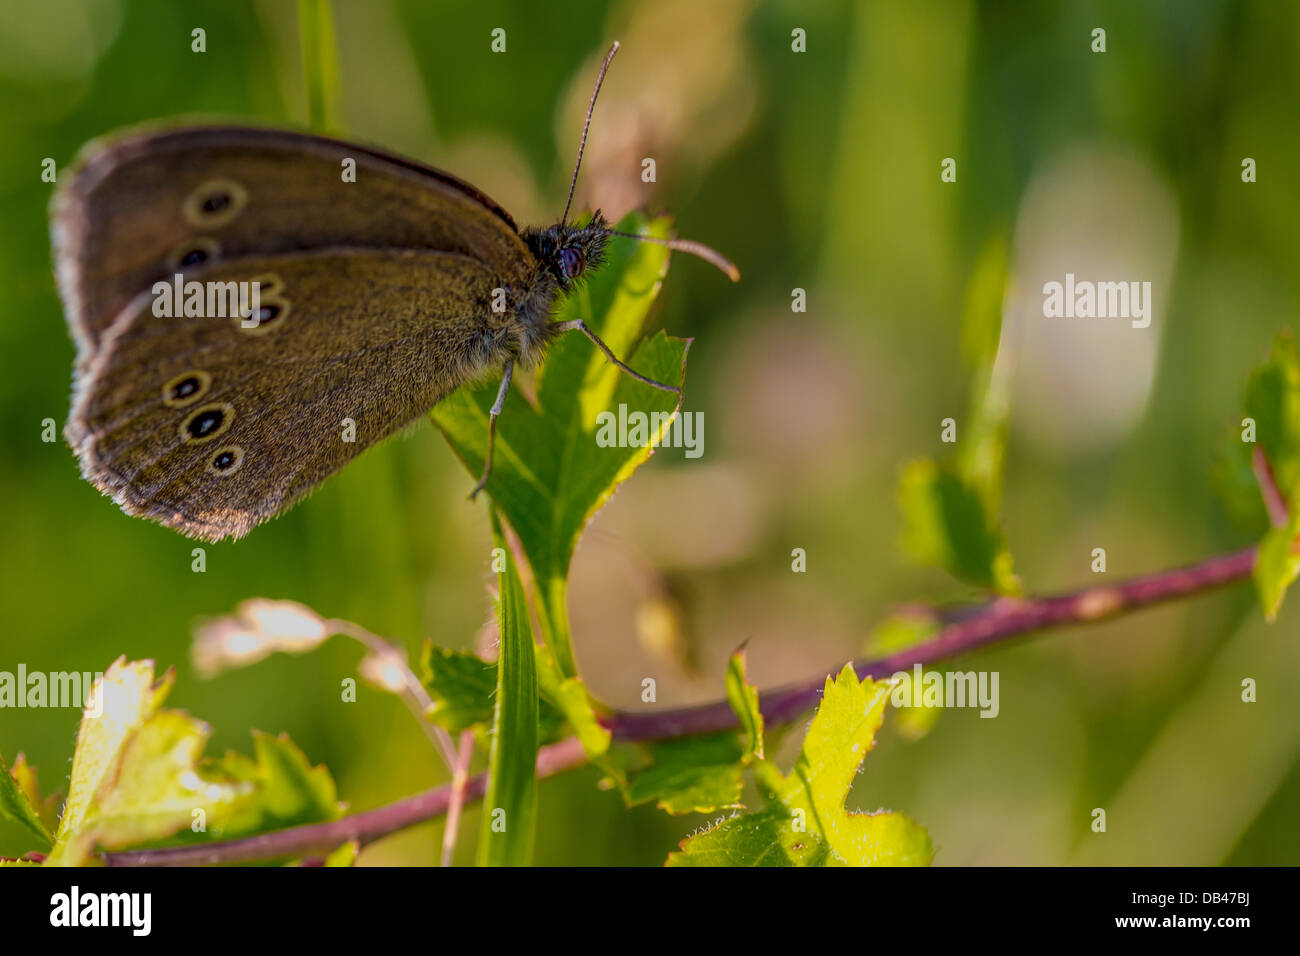 Ringlet butterfly found in south-east England. Stock Photo